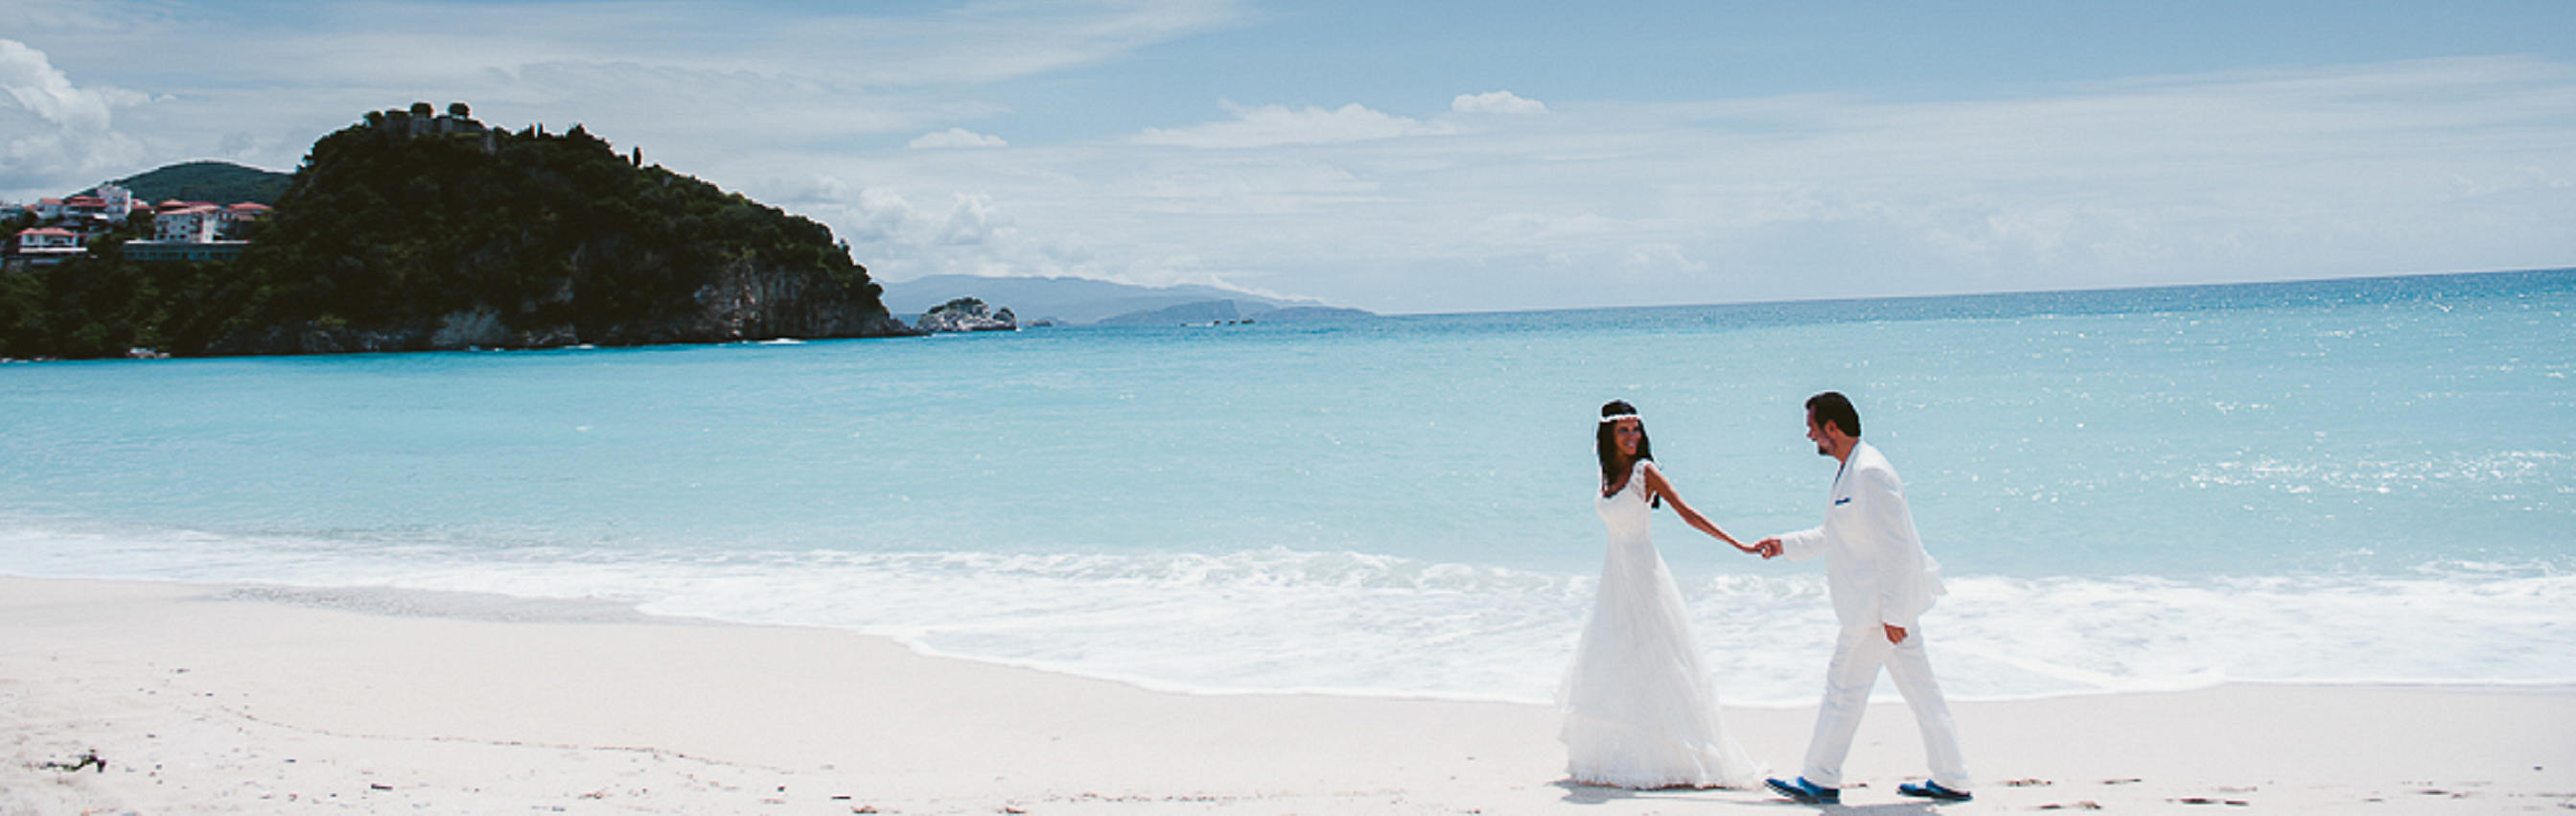 WEDDING-PARGA-GREECE2687x851